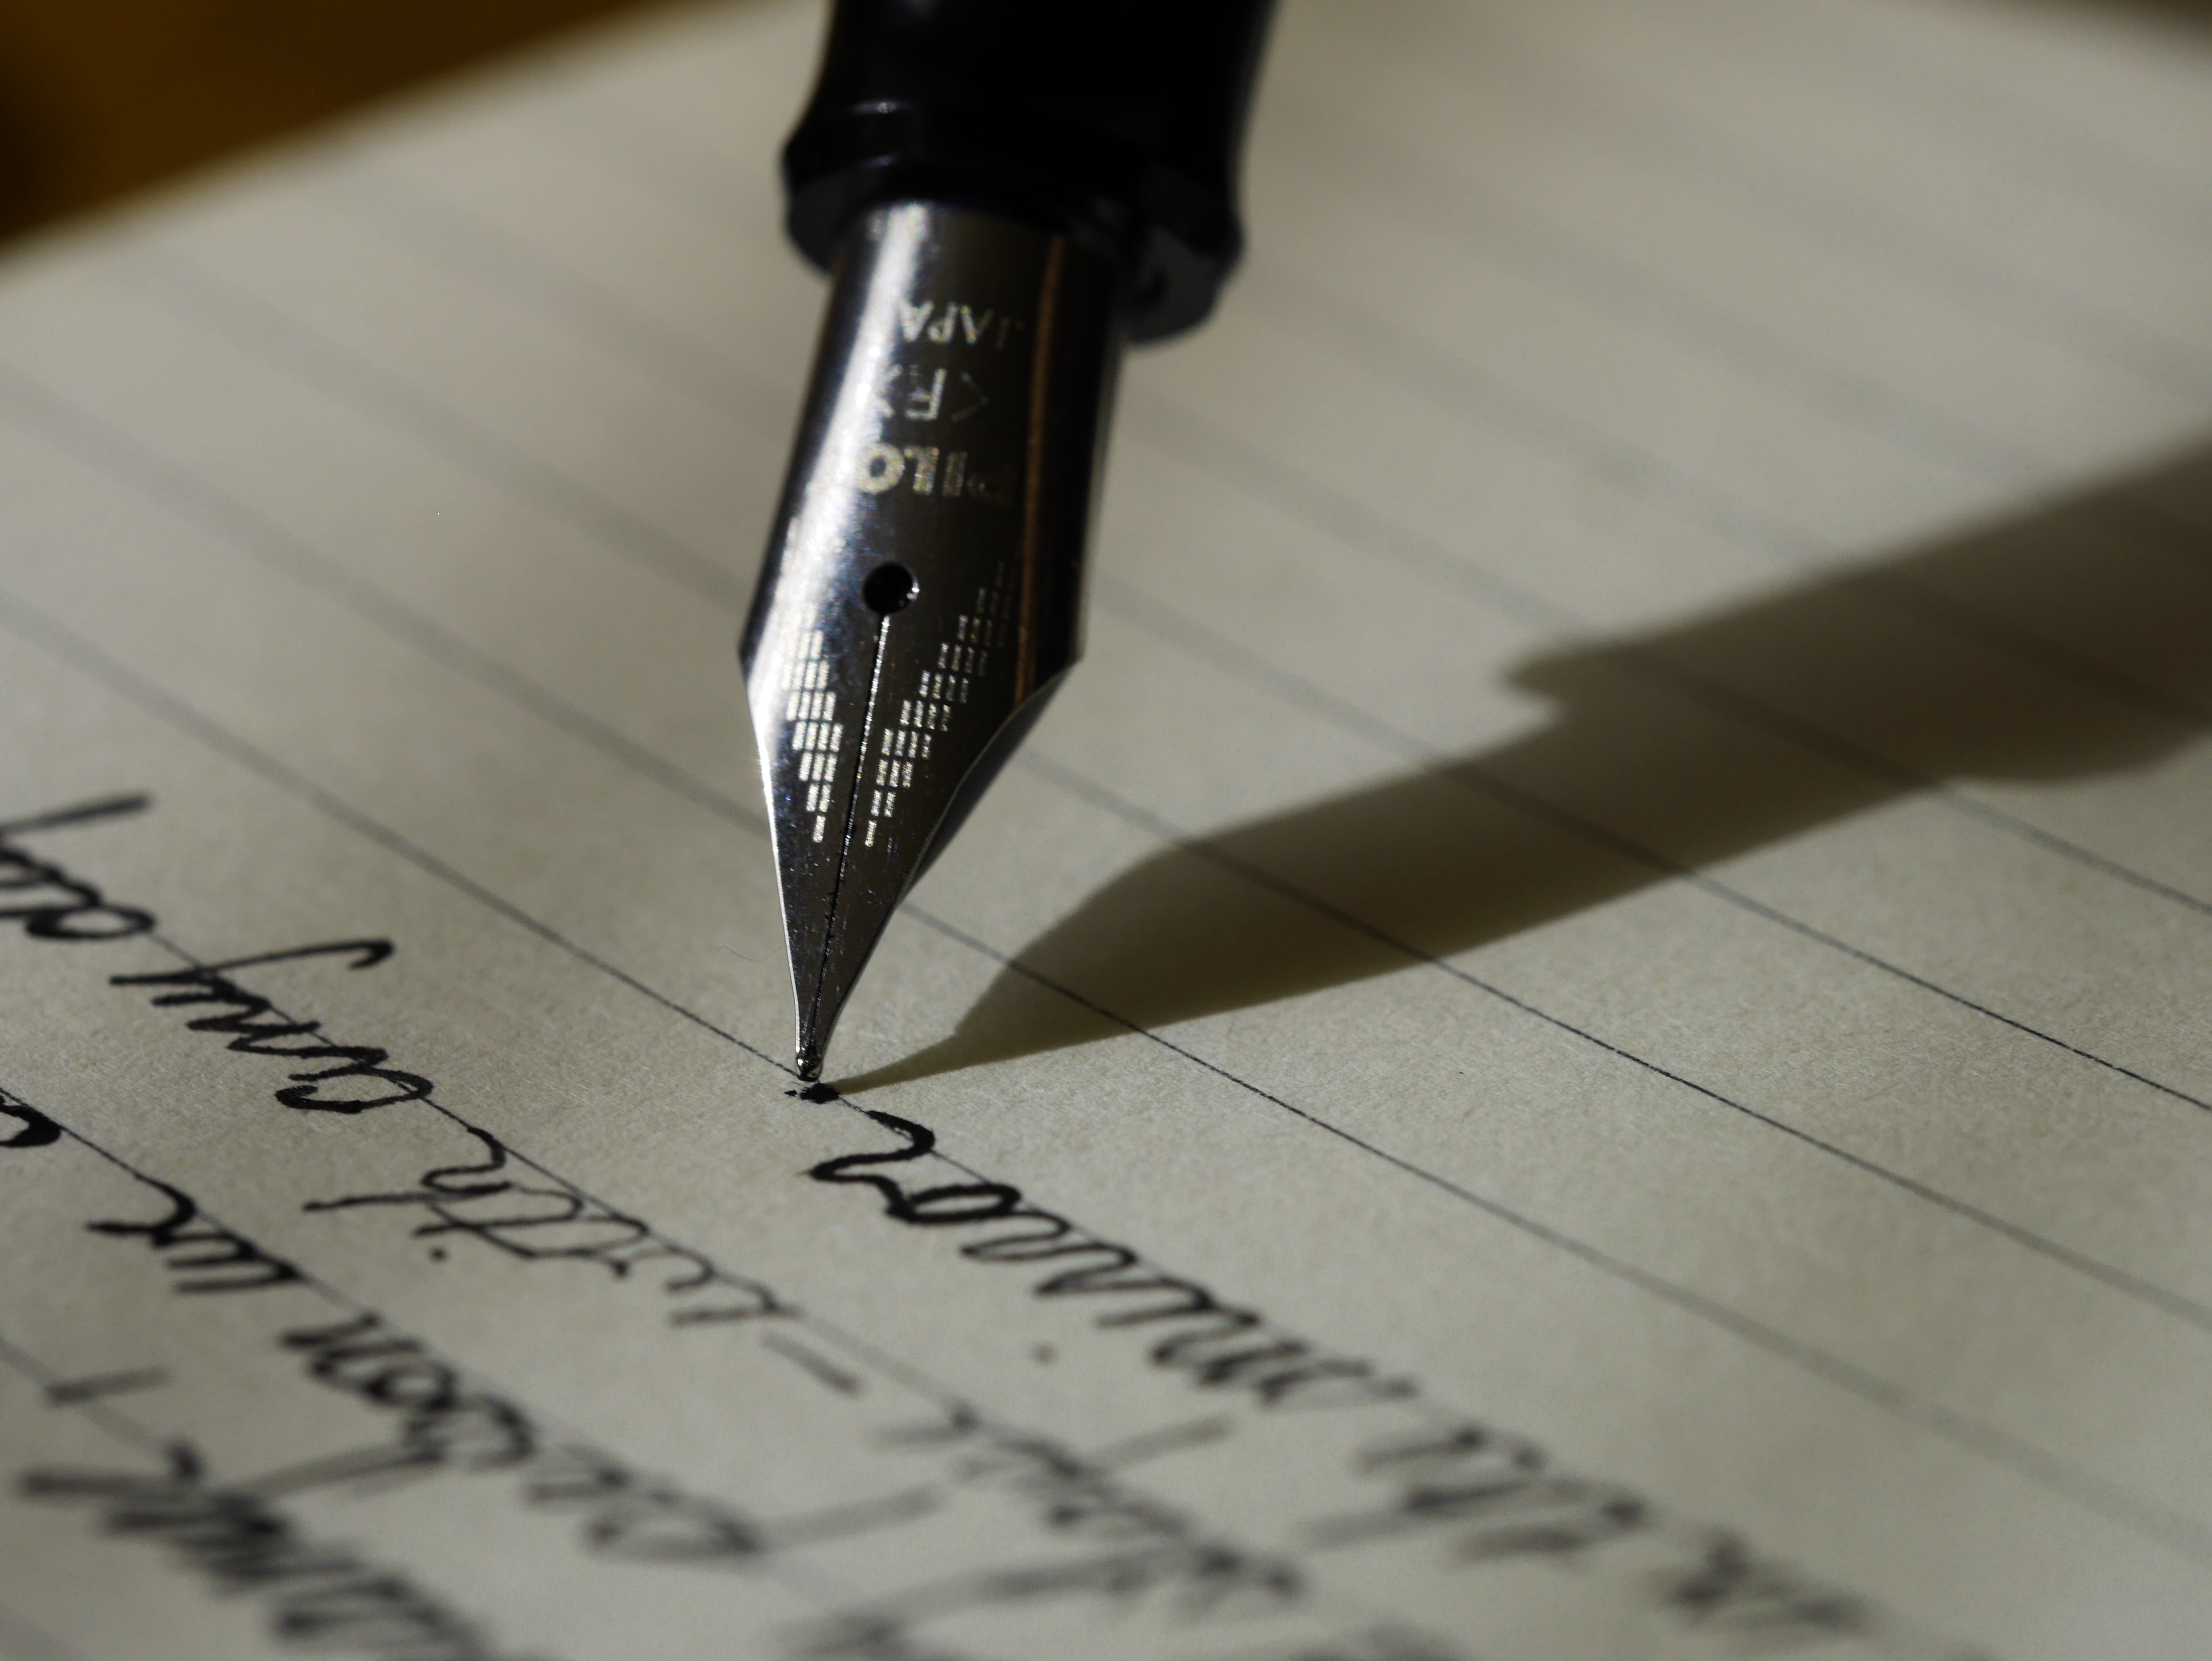 Image of a black ink pen writing on lined paper. Photo courtesy of Aaron Burden on Unsplash.